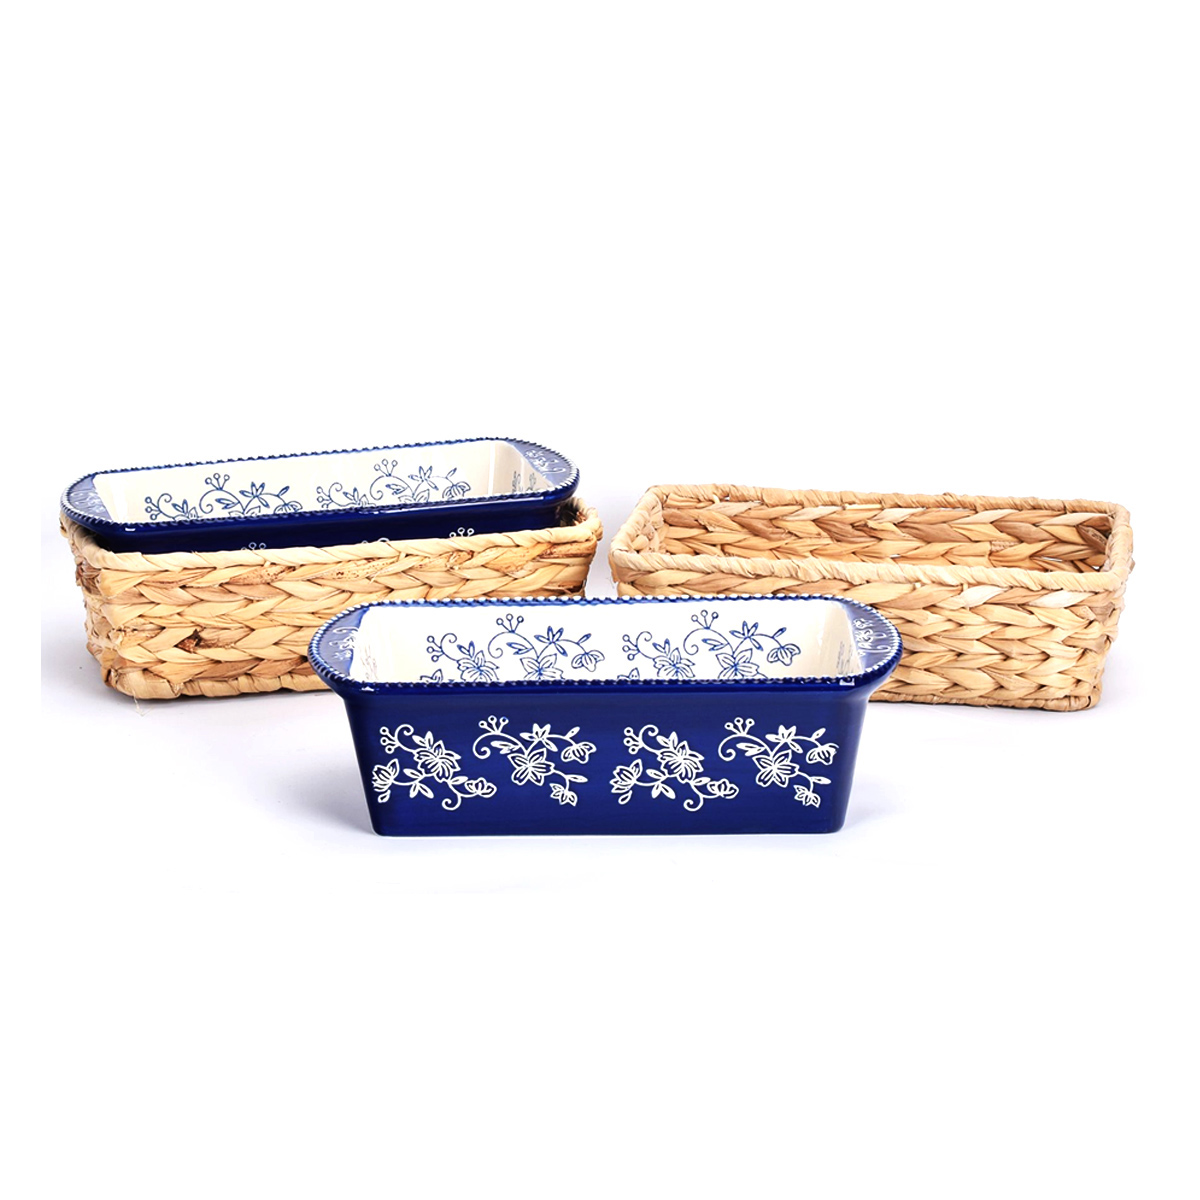 temp-tations® Floral Lace Loaf Pans in Baskets – 4 Piece – Blue